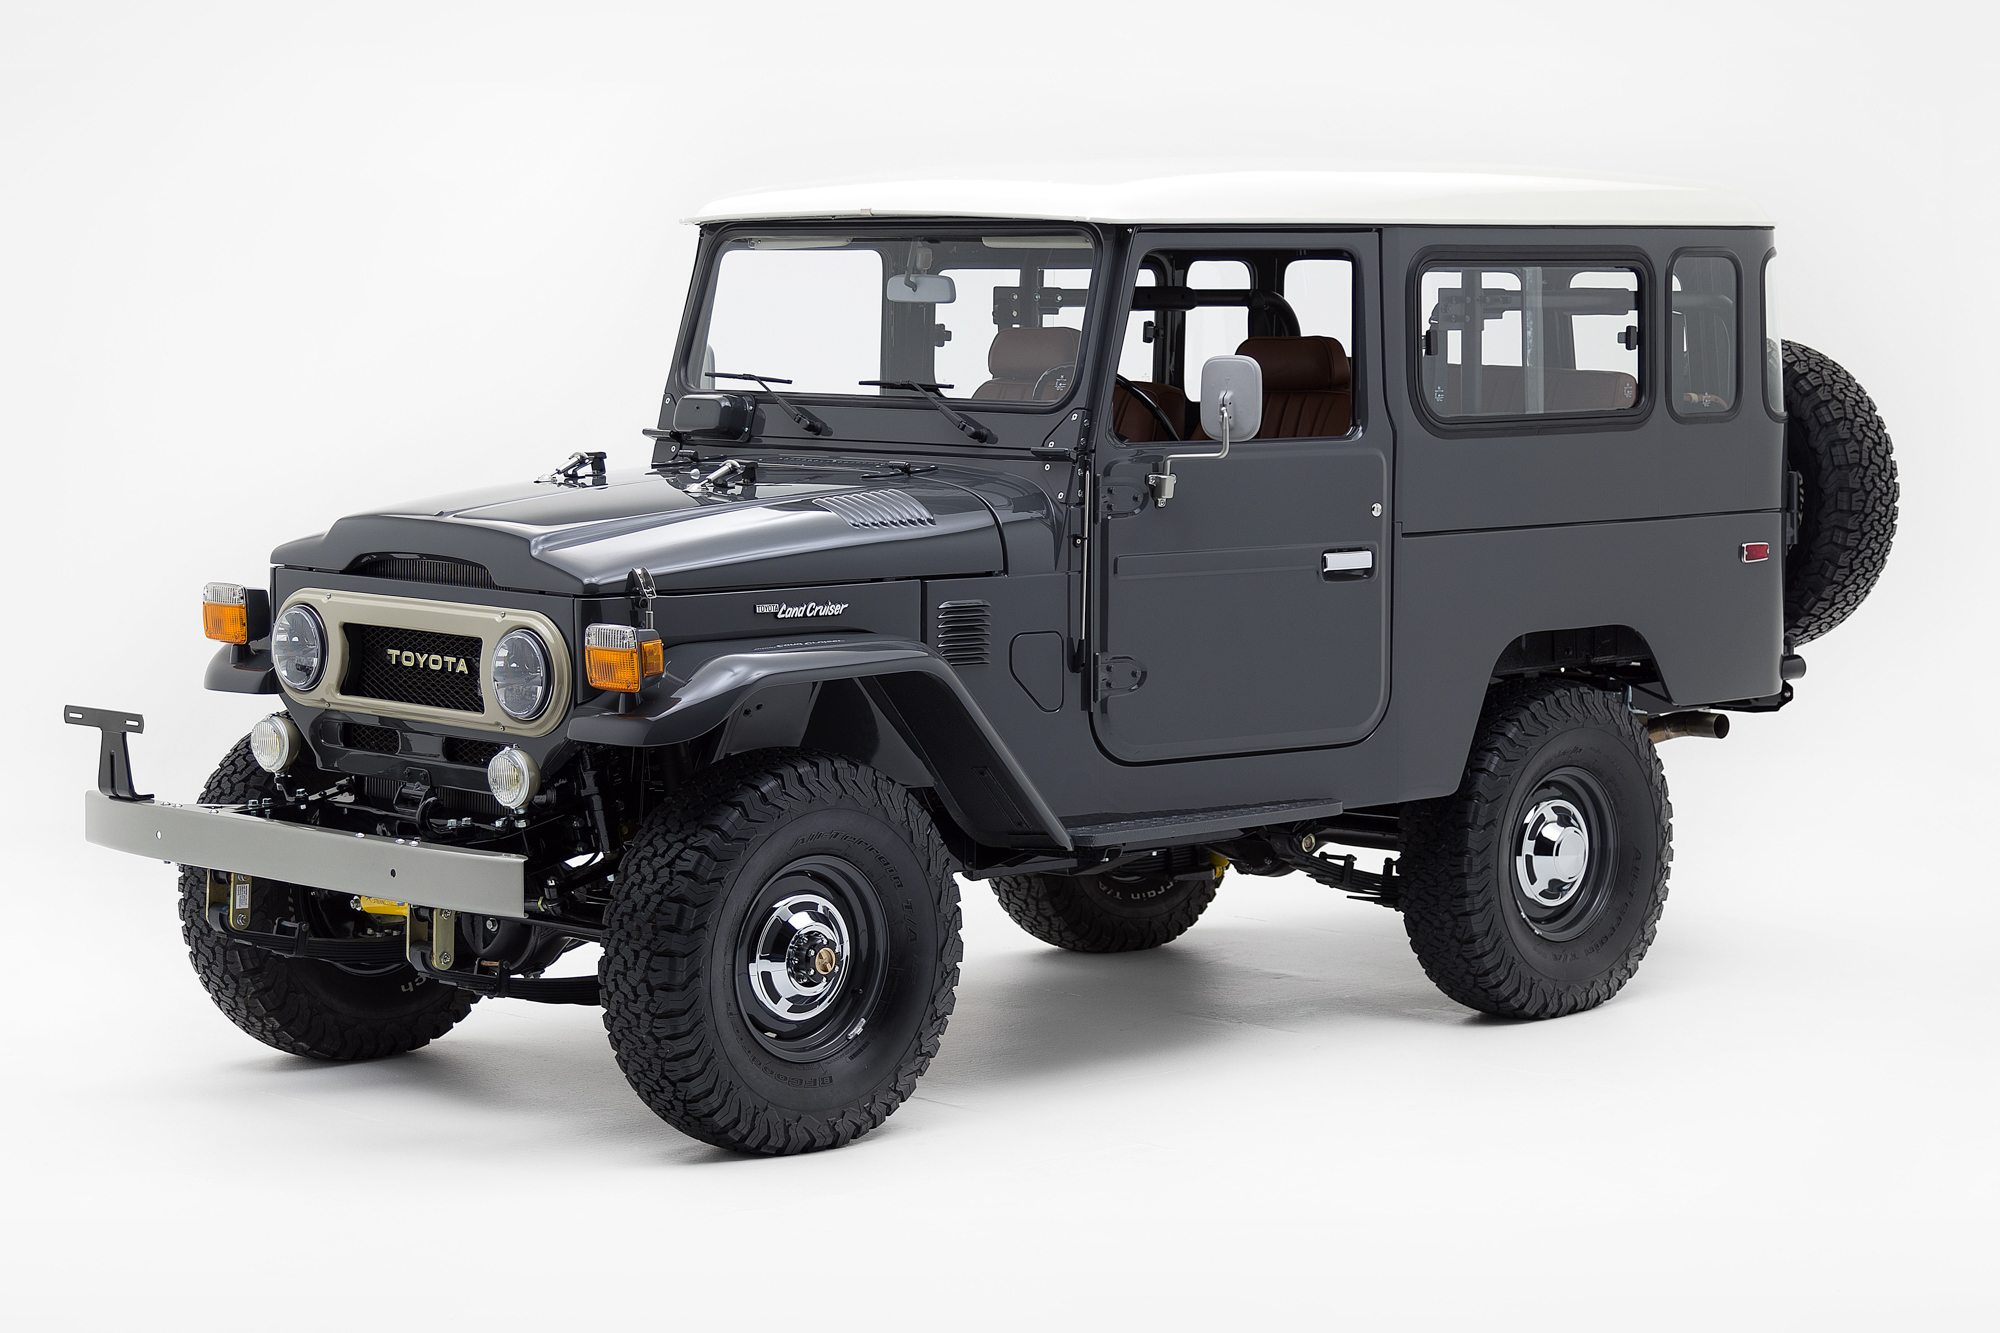 1978 Toyota Land Cruiser _6315